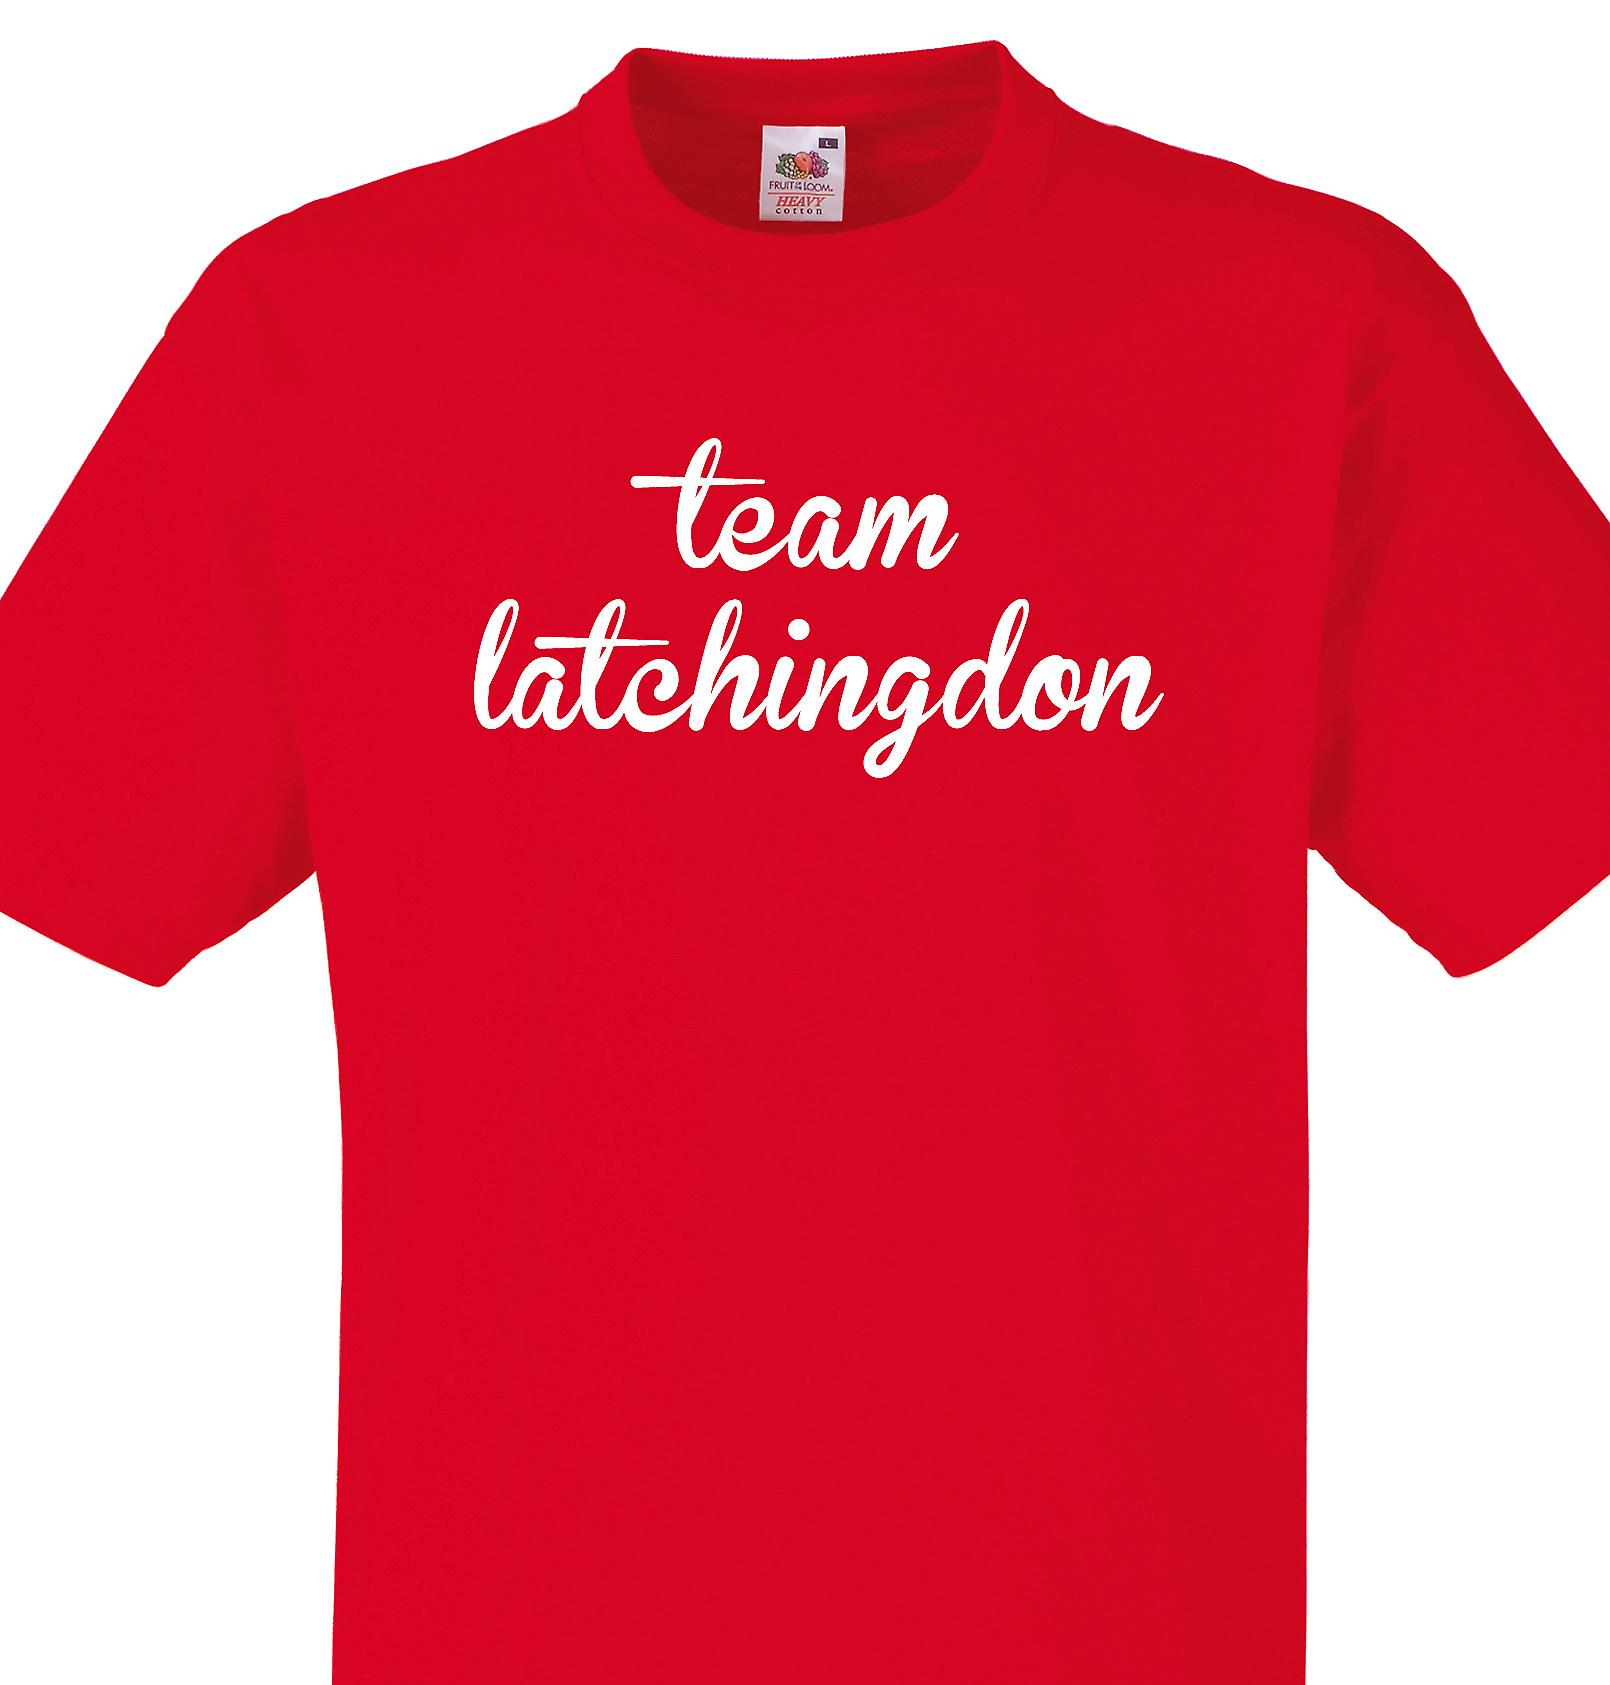 Team Latchingdon Red T shirt